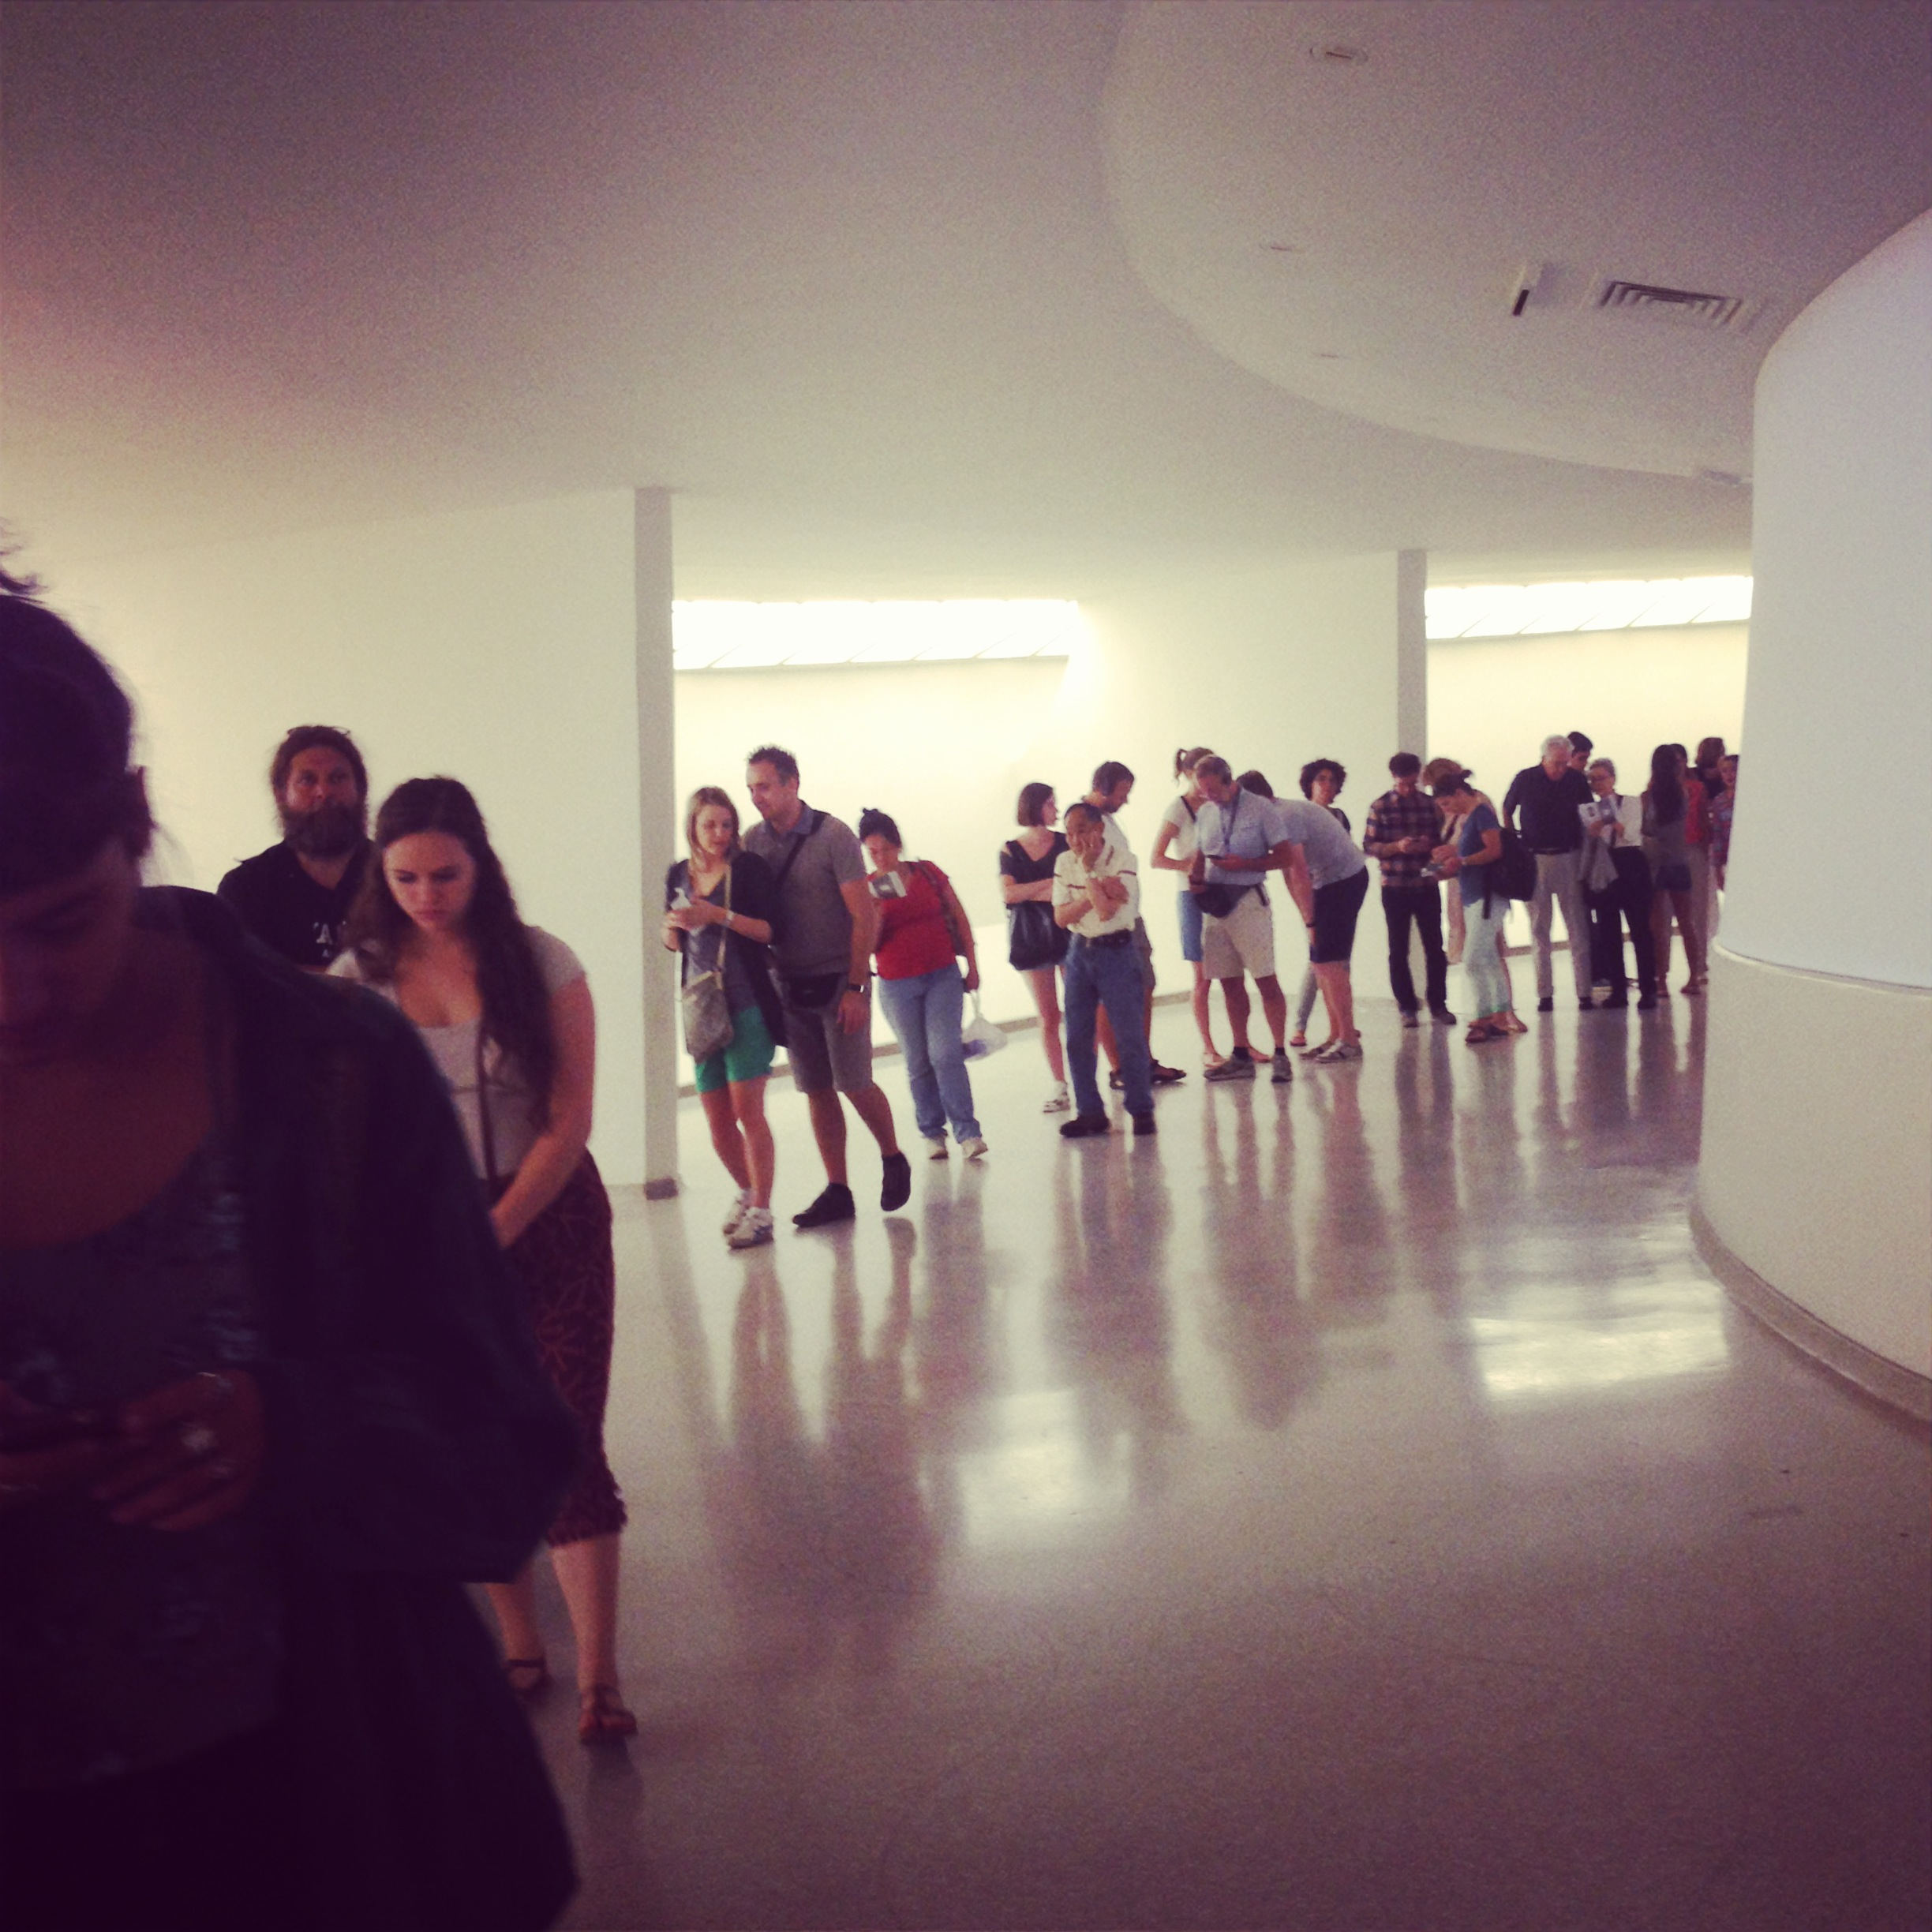 We weren't the only ones excited to see the James Turrell exhibit at the Guggenheim in New York City